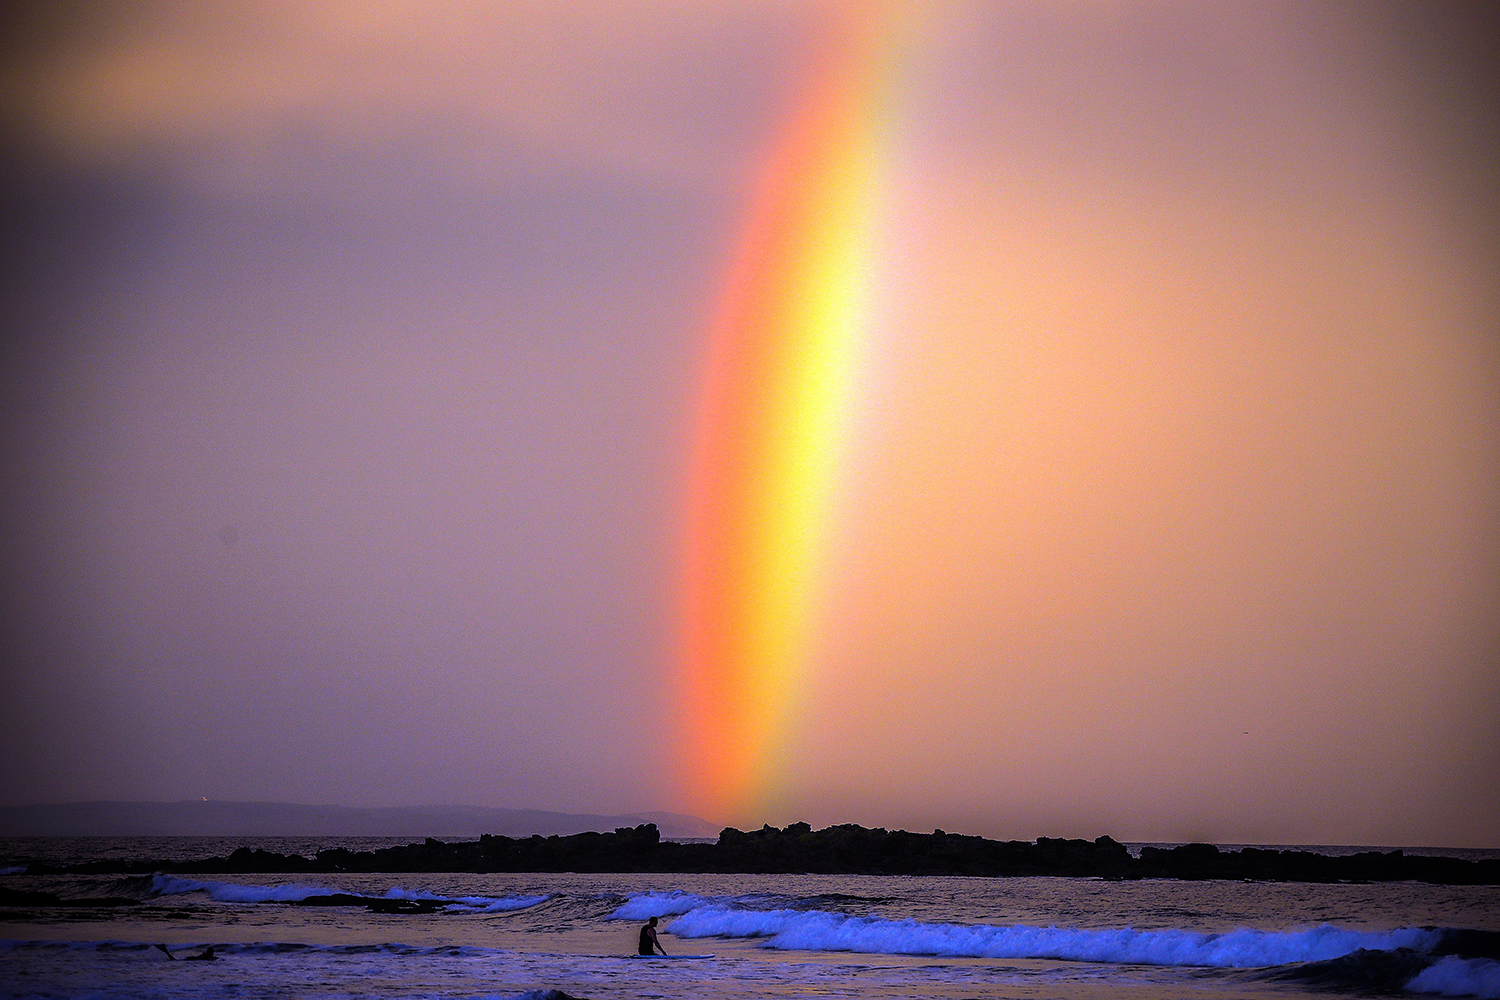 A rainbow appears behind a surfer at sunset on Narrawallee Beach in Mollymook, Australia, on April 10. DAVID GRAY/AFP via Getty Images